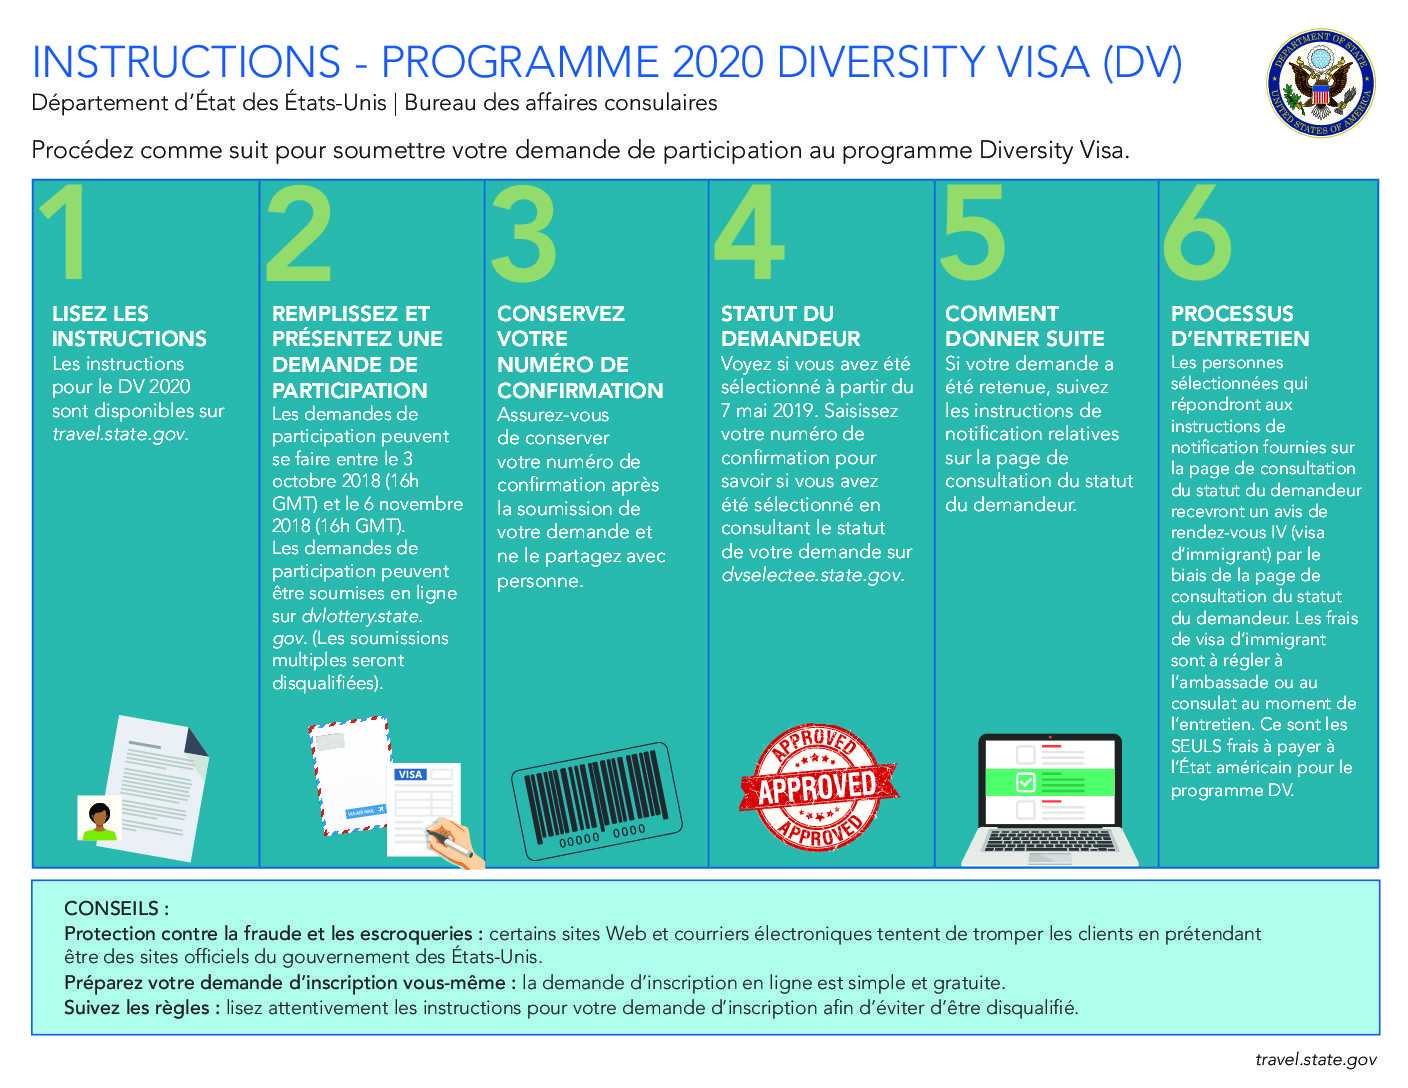 INSTRUCTIONS FOR THE 2020 DIVERSITY IMMIGRANT VISA PROGRAM (DV-2020